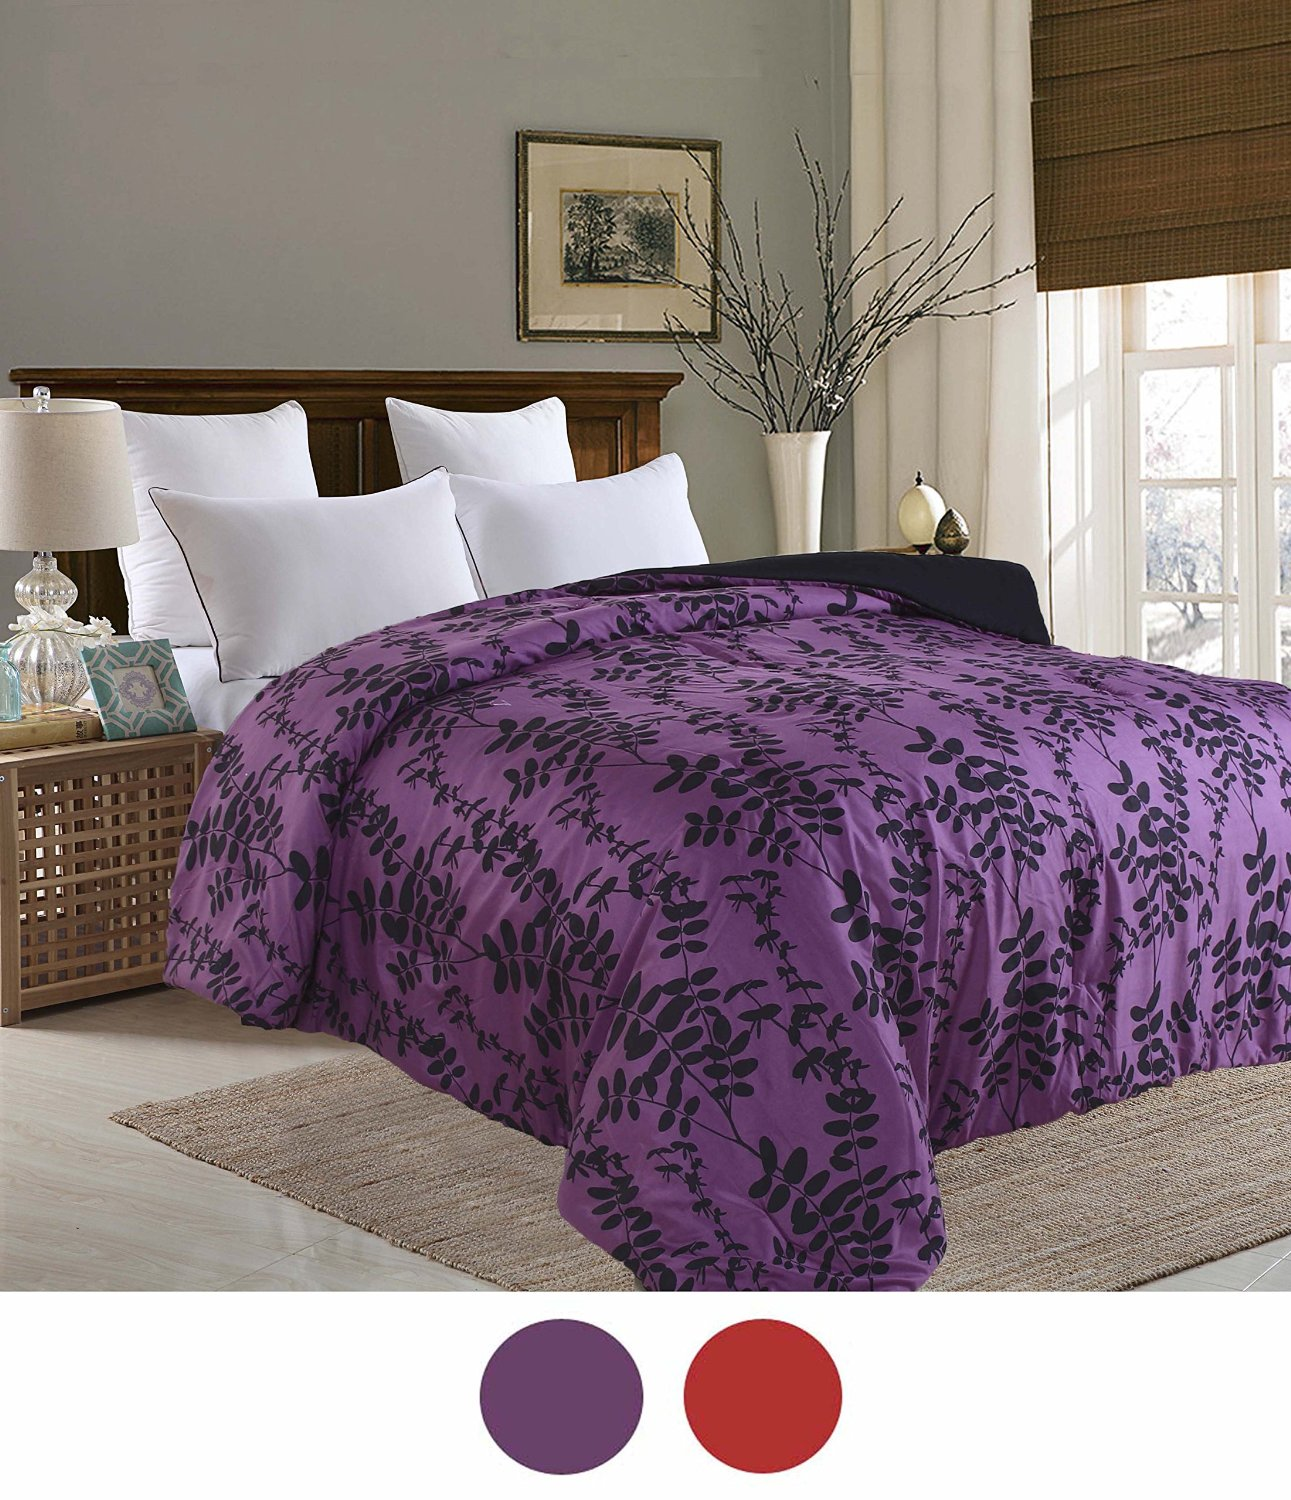 set line queen cotton brown free sham find shopping comforter guides cheap floral spirit at on rustic and get quotations comforters deals